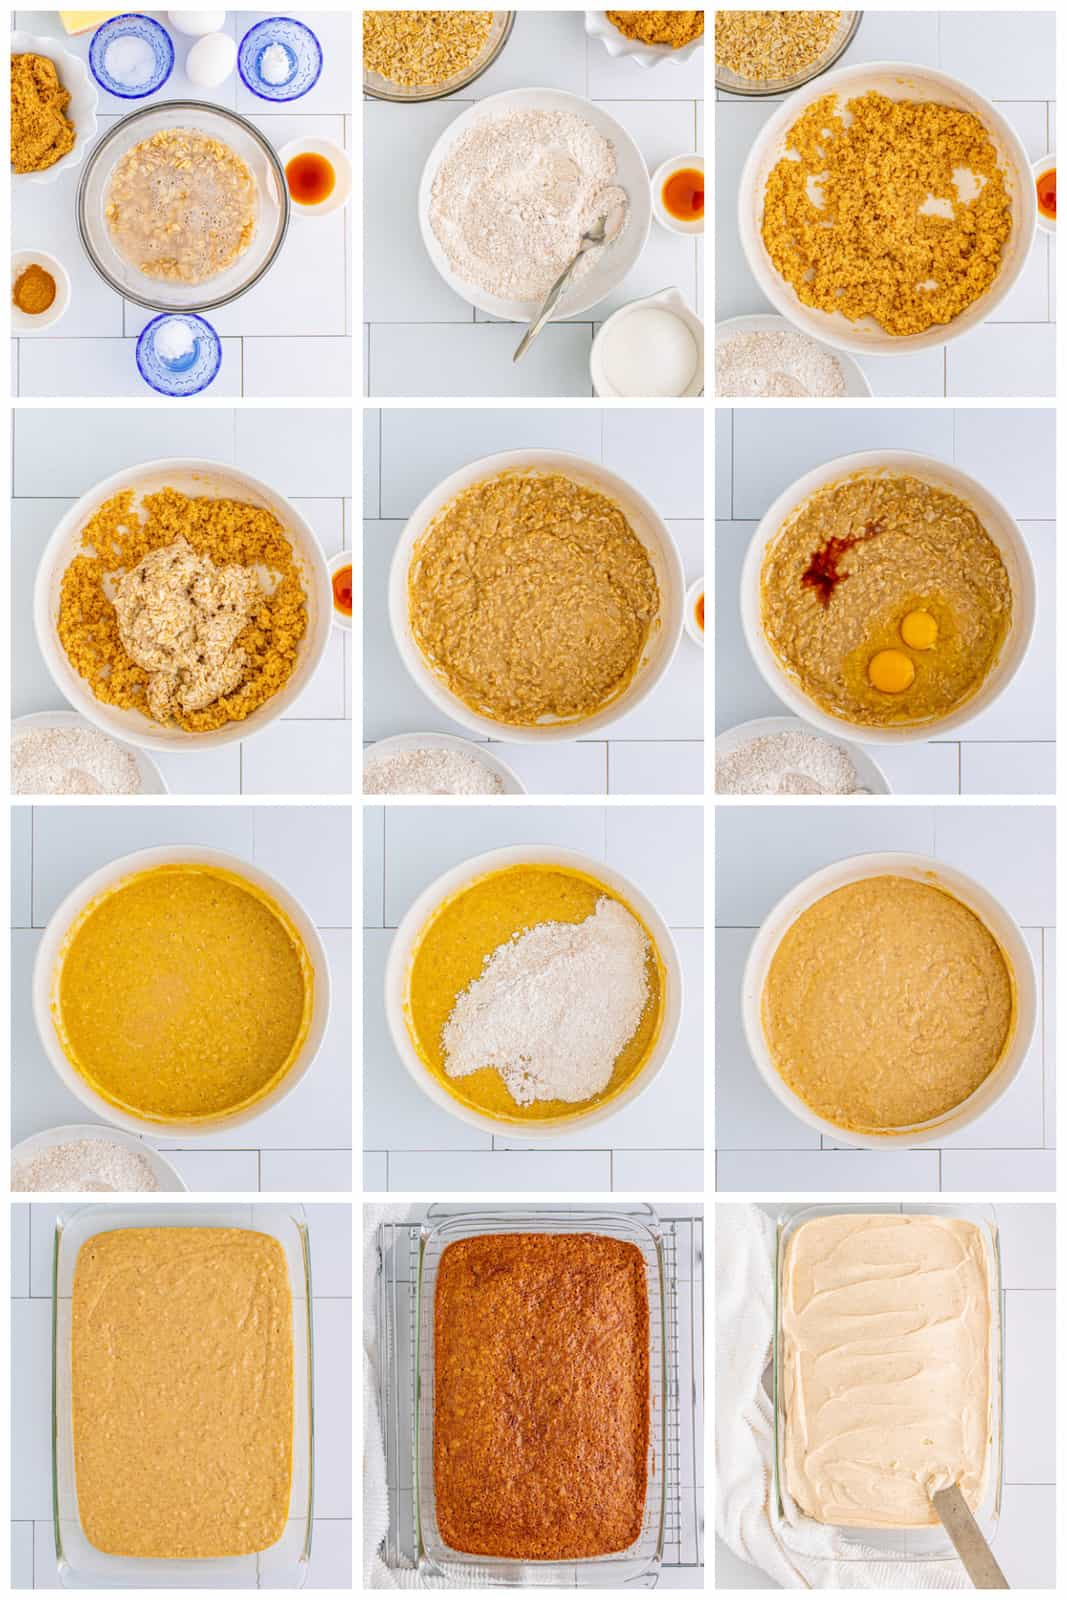 Step by step photos on how to make an Oatmeal Cake